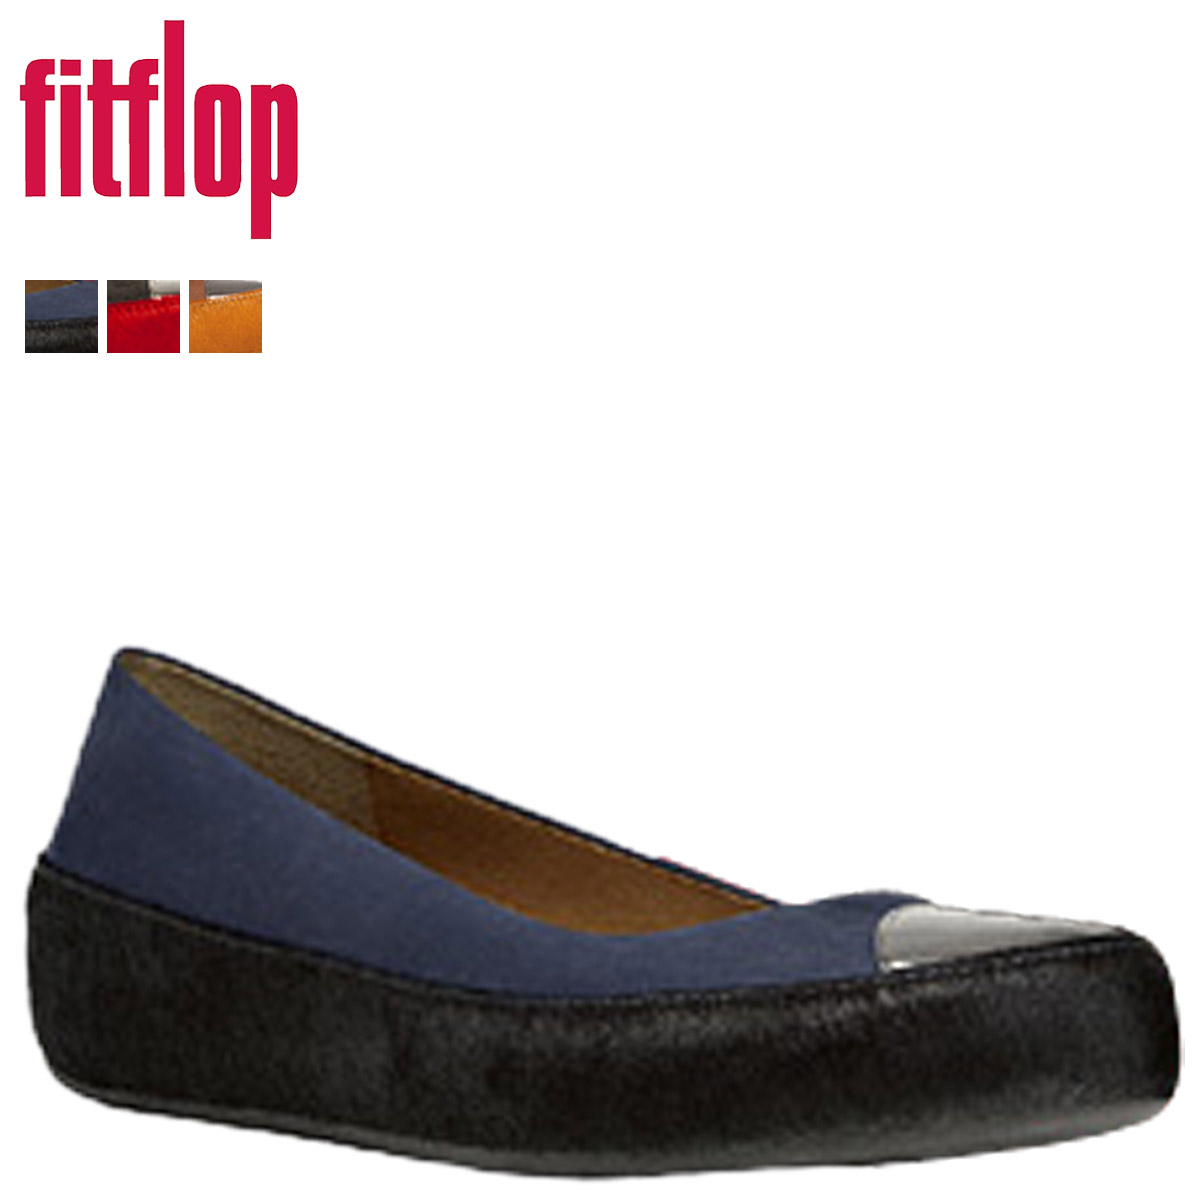 a5a9194f4 fitflop ladies shoes